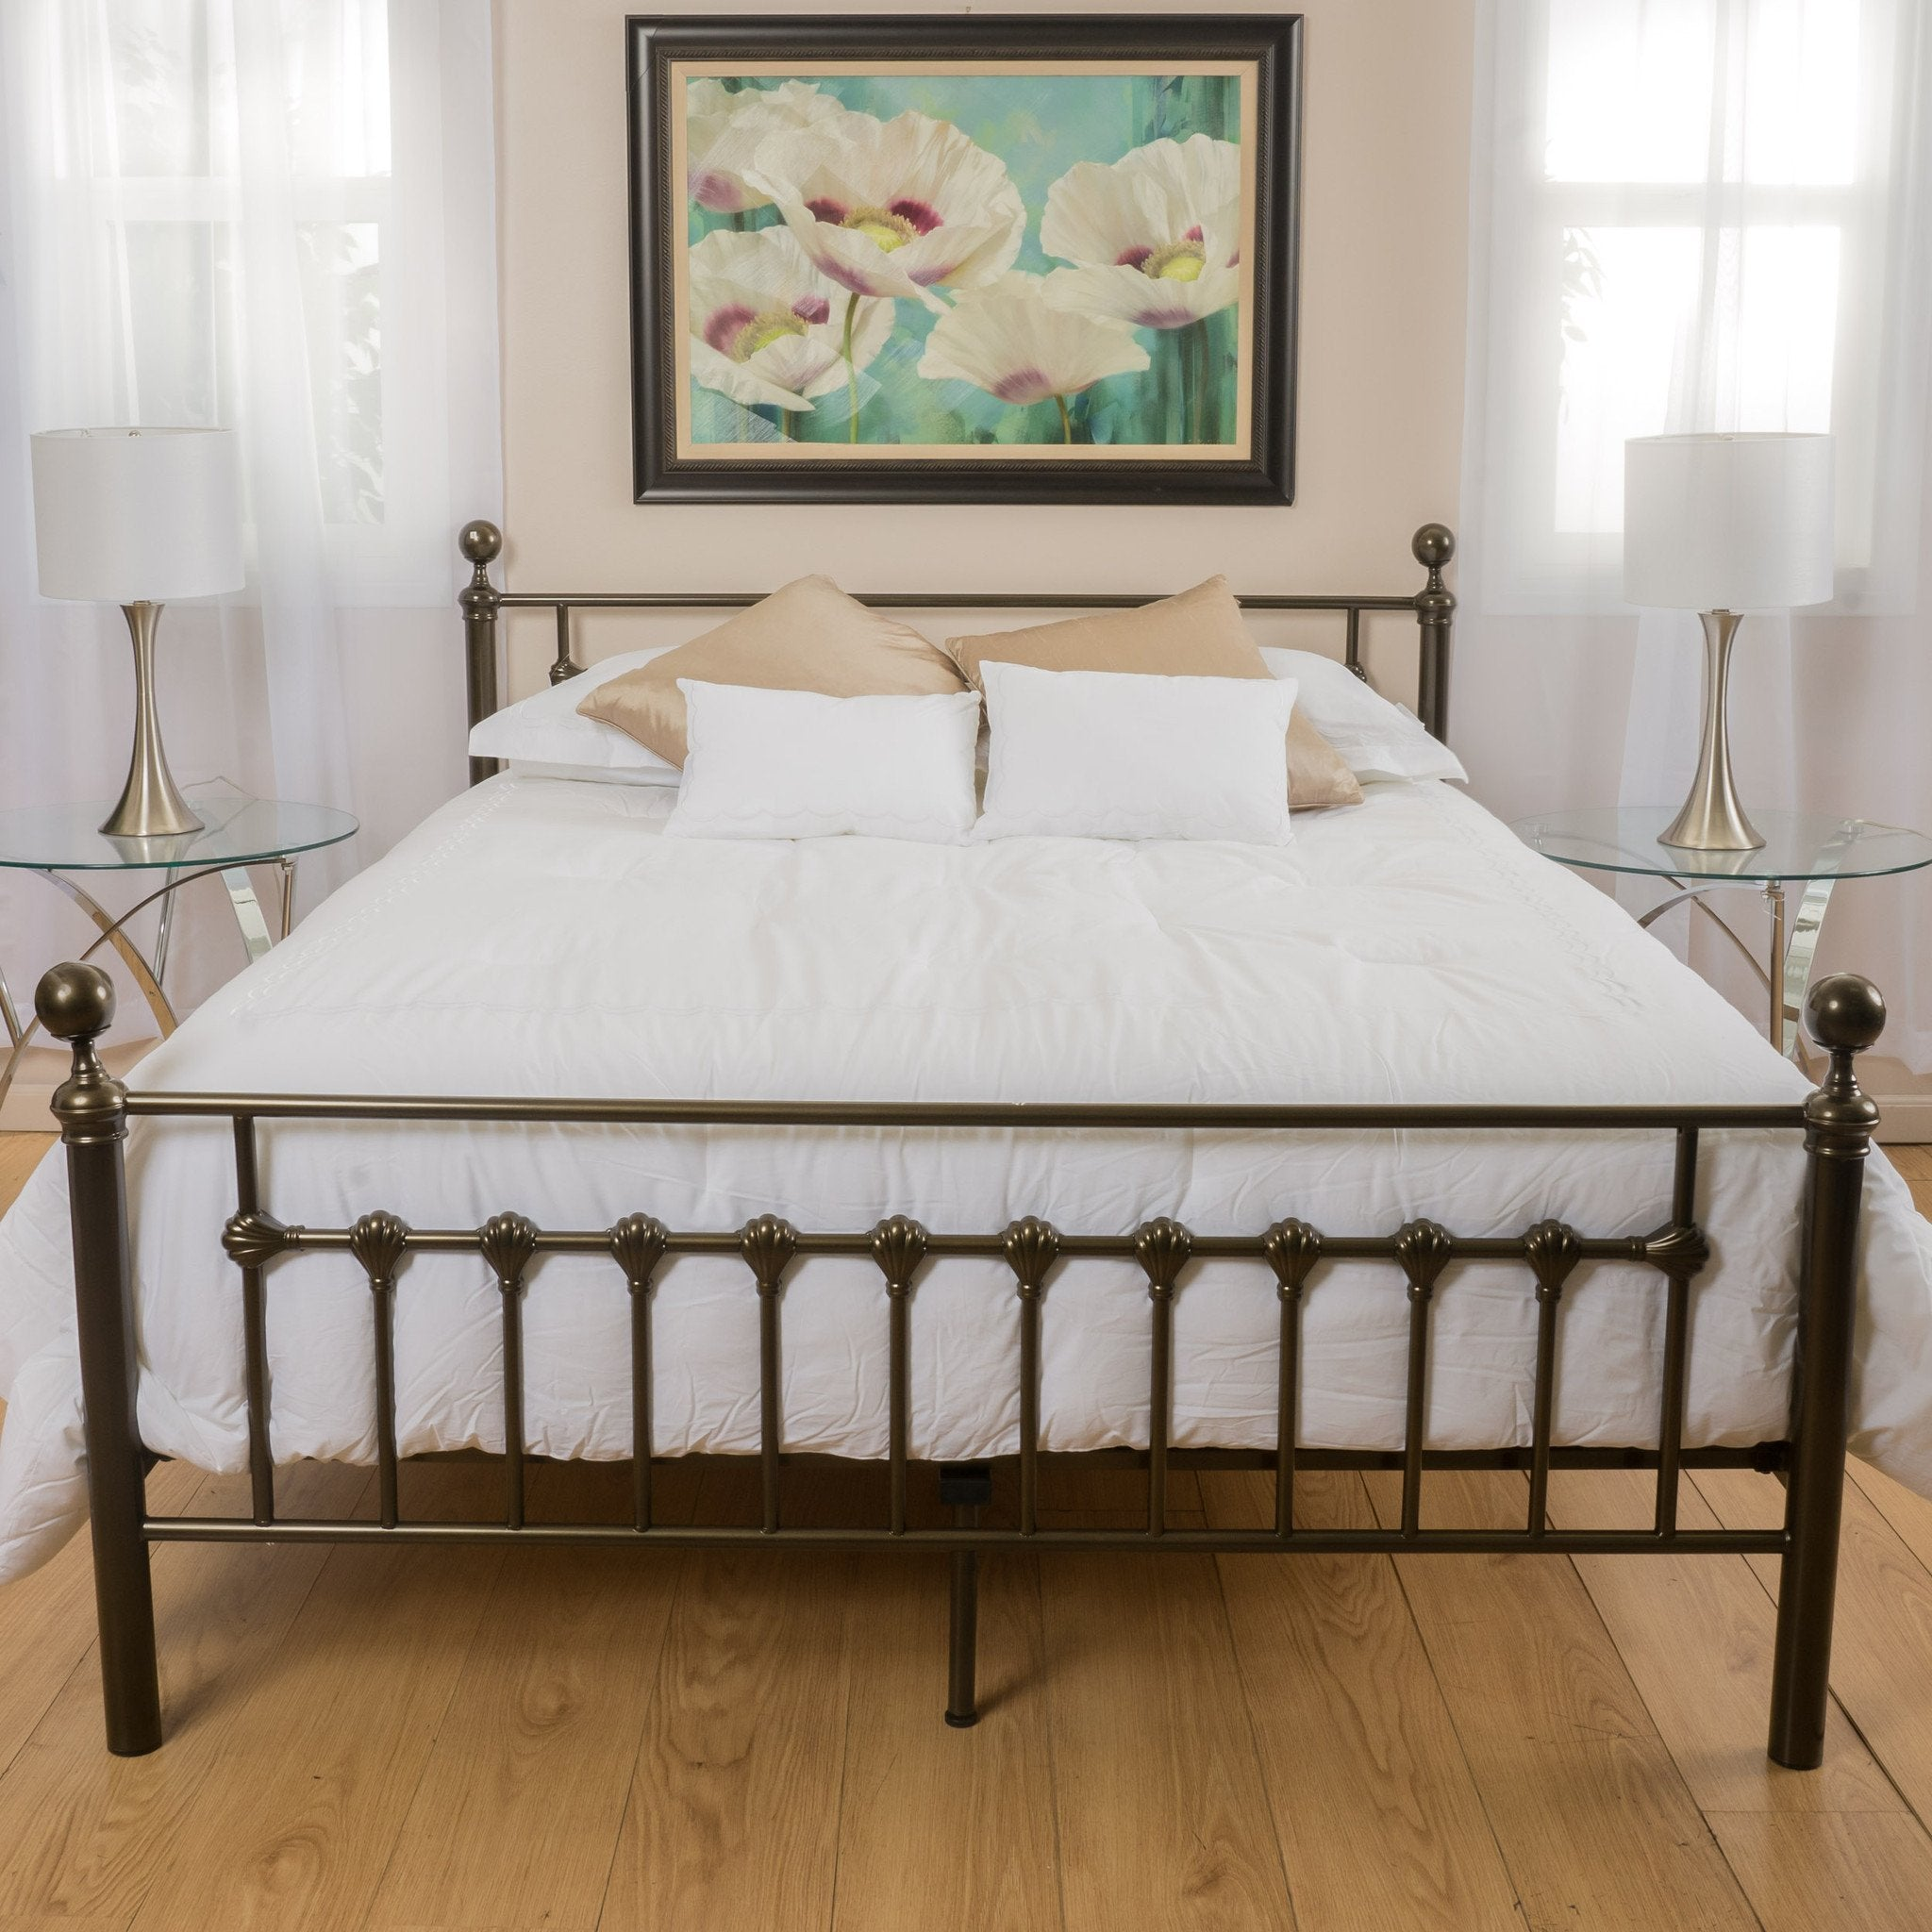 Seastar Queen Size Bed Frame